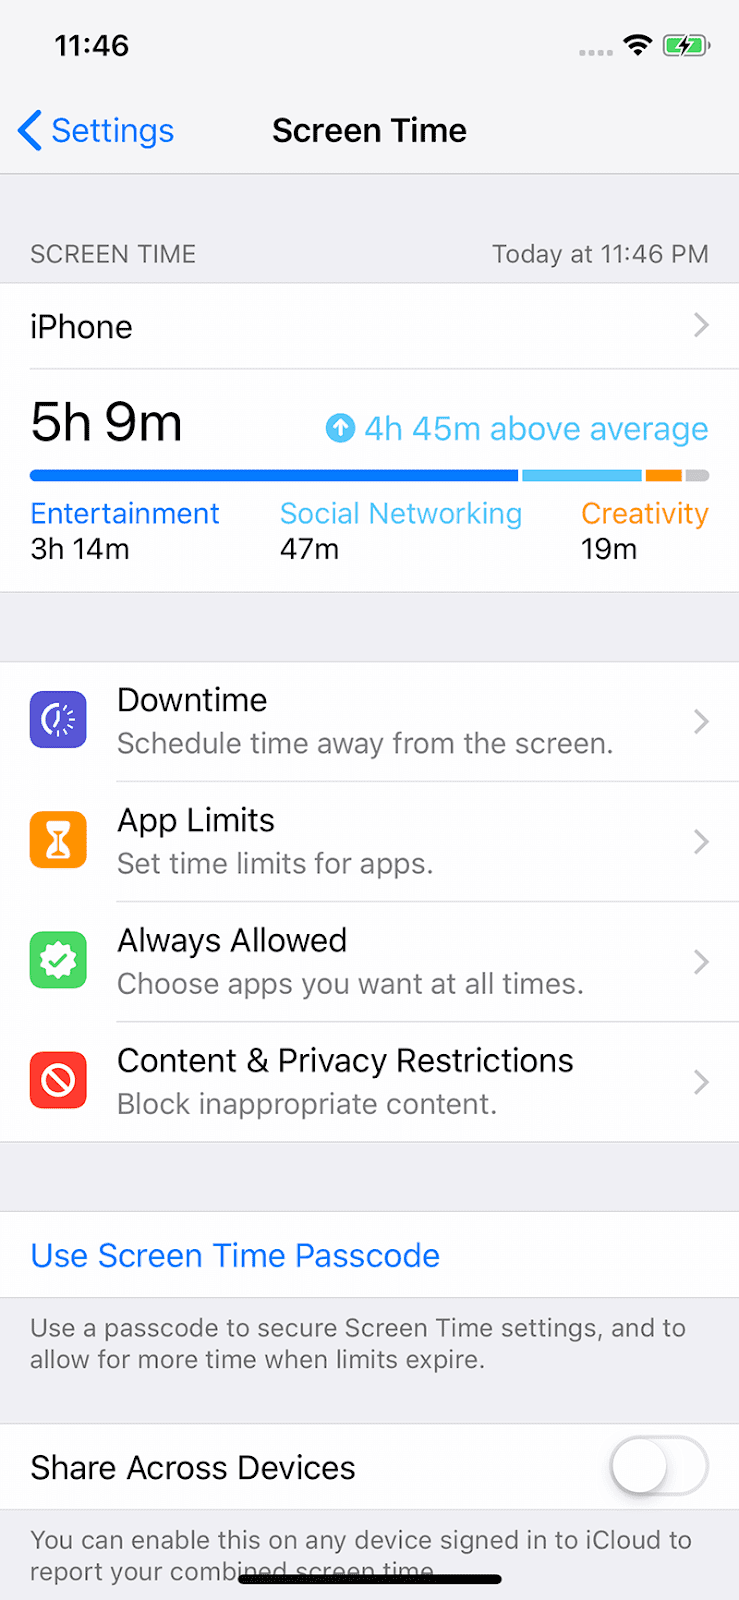 The new screen time breaks down your daily and weekly usage